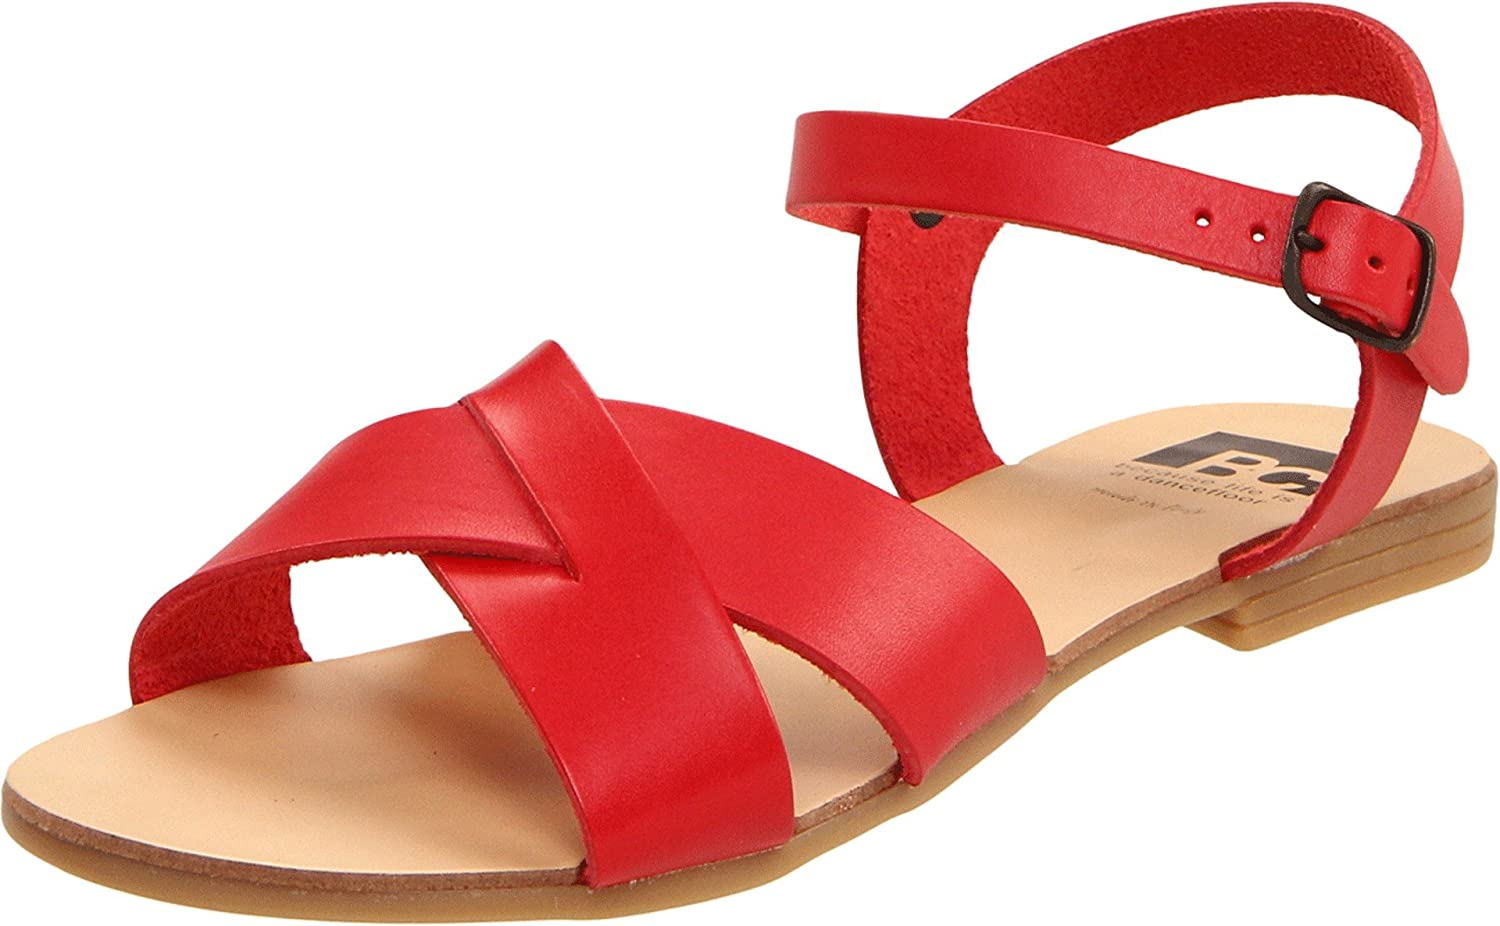 BC Footwear Women's Sandal Swagger Genuine Free Arlington Mall Shipping Ankle-Strap